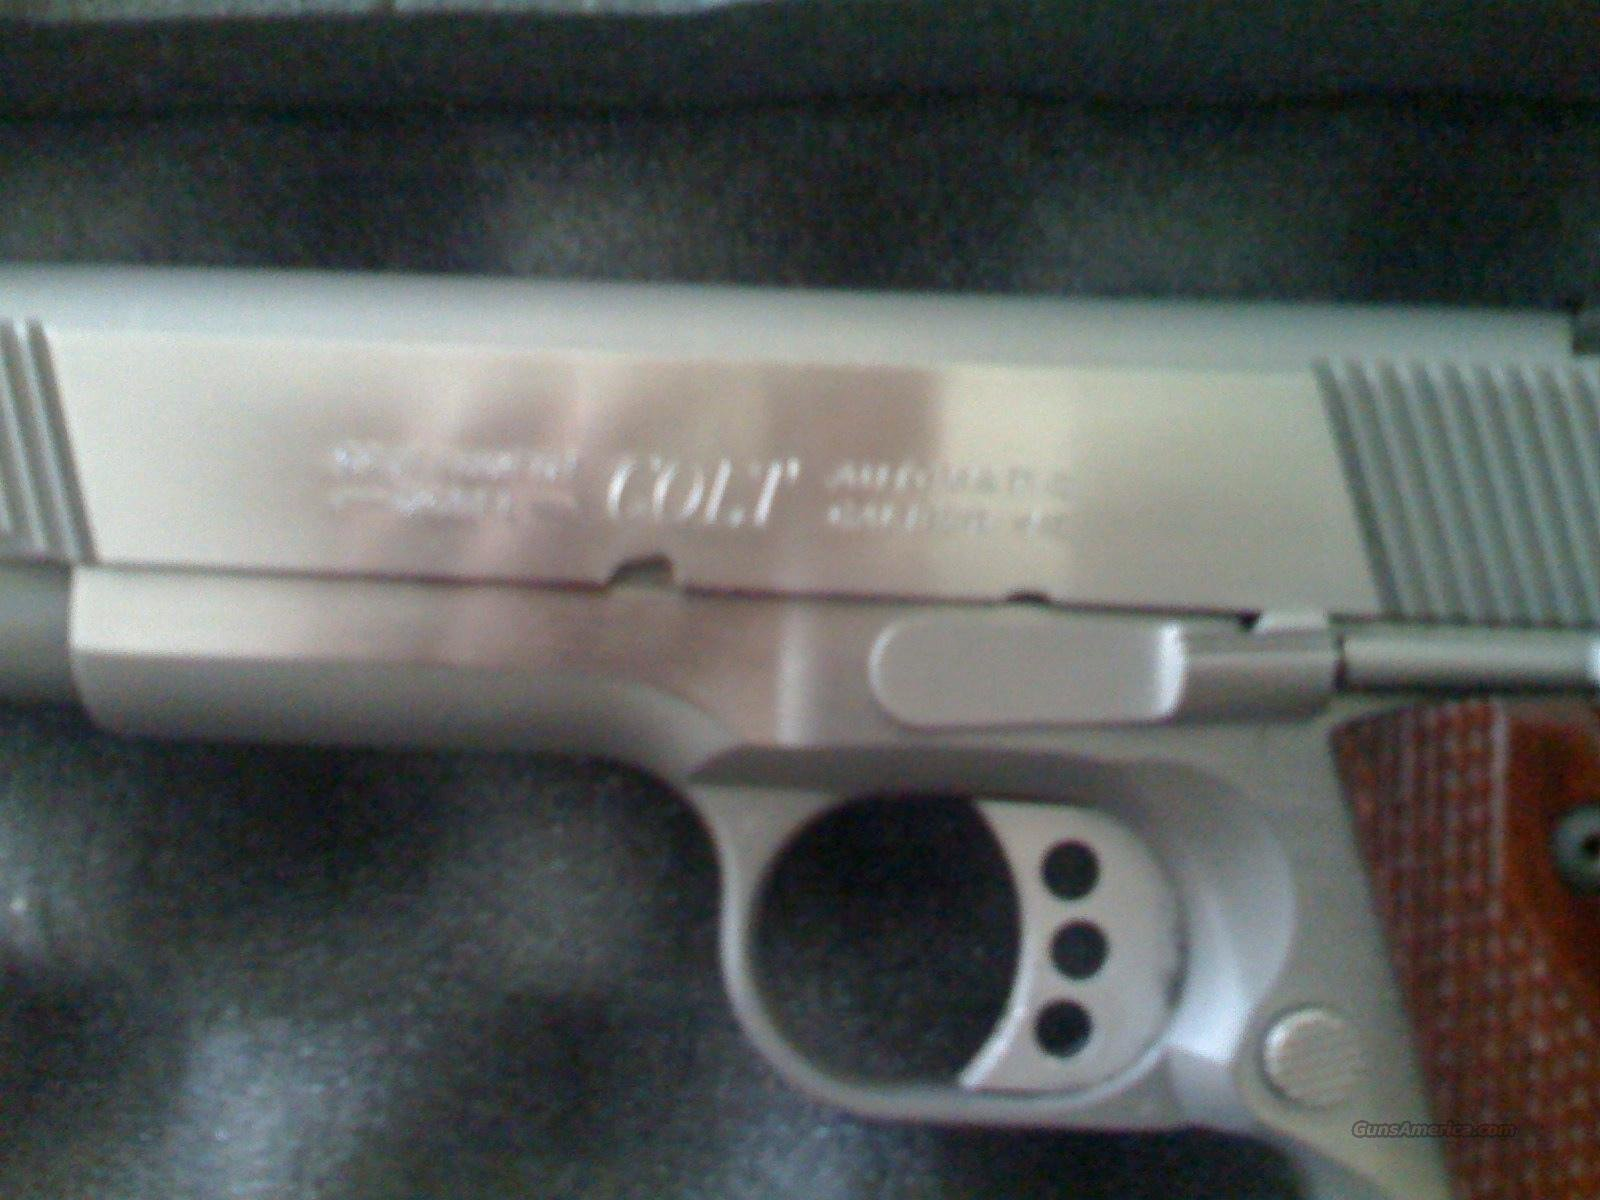 COLT 45 STAINLESS model 01070xse Ca Approved  Guns > Pistols > Colt Automatic Pistols (1911 & Var)